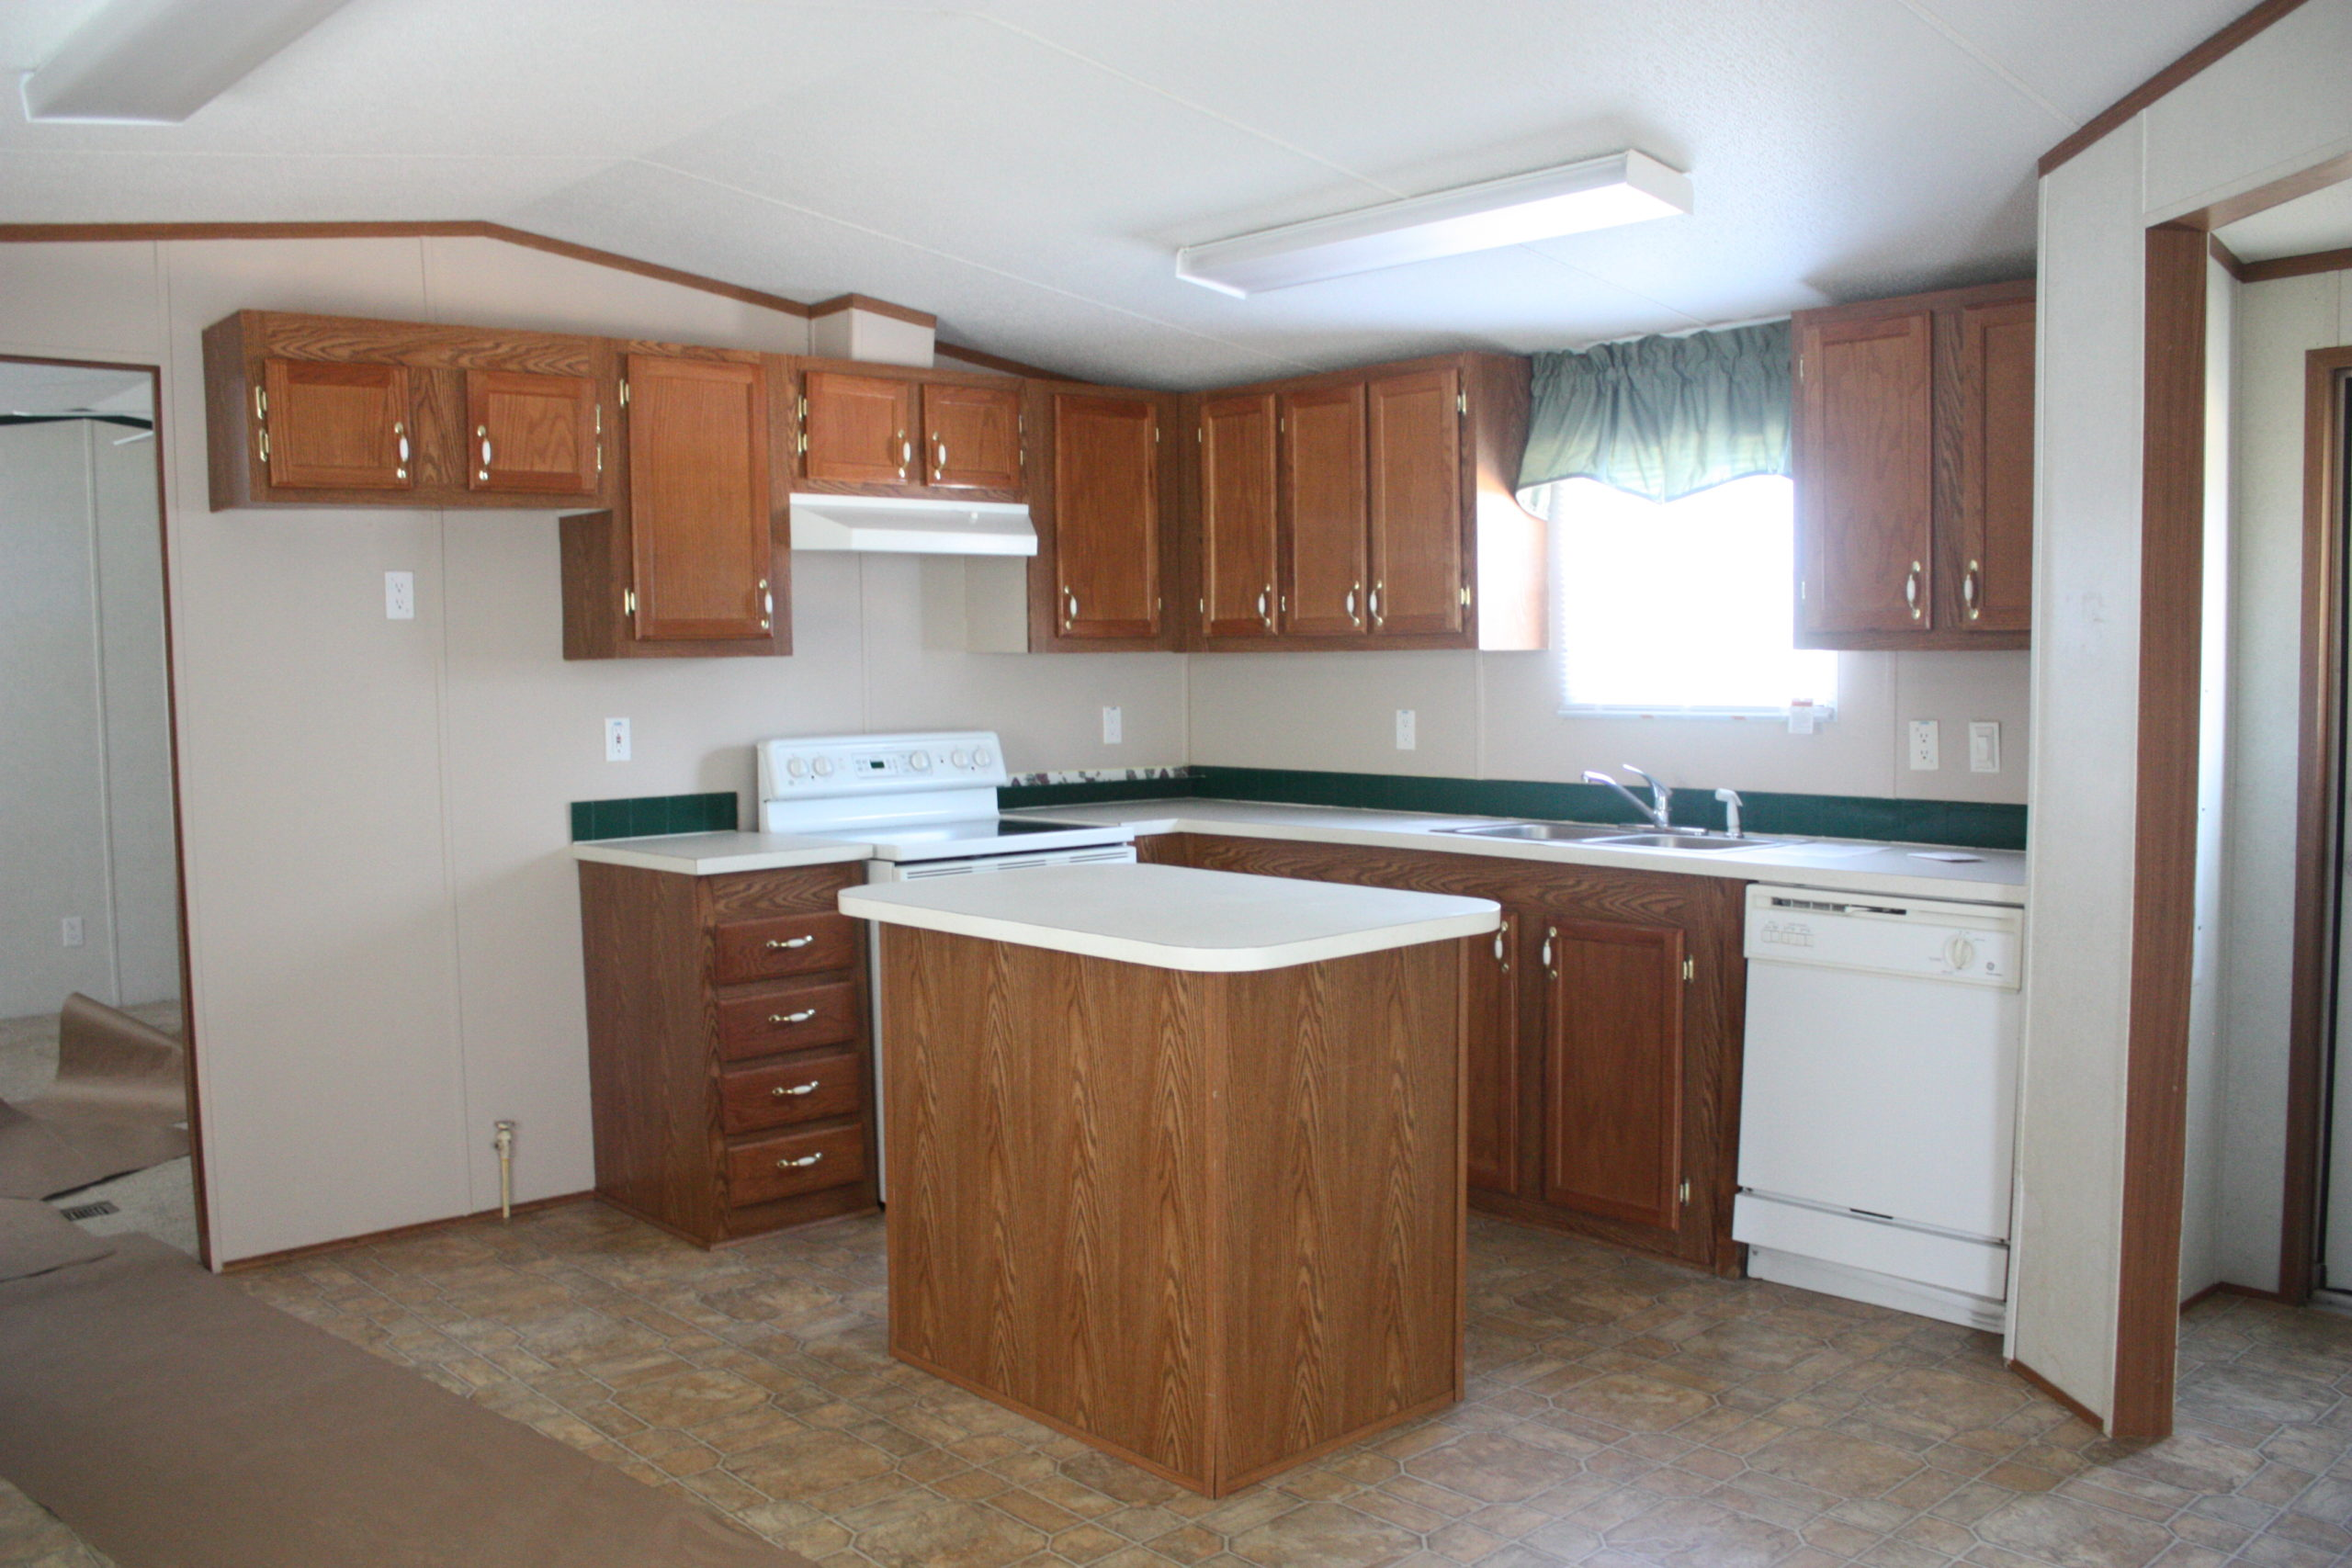 This Mobile Home Kitchen Needed Major Updating, And Boy Did It Get It! Check